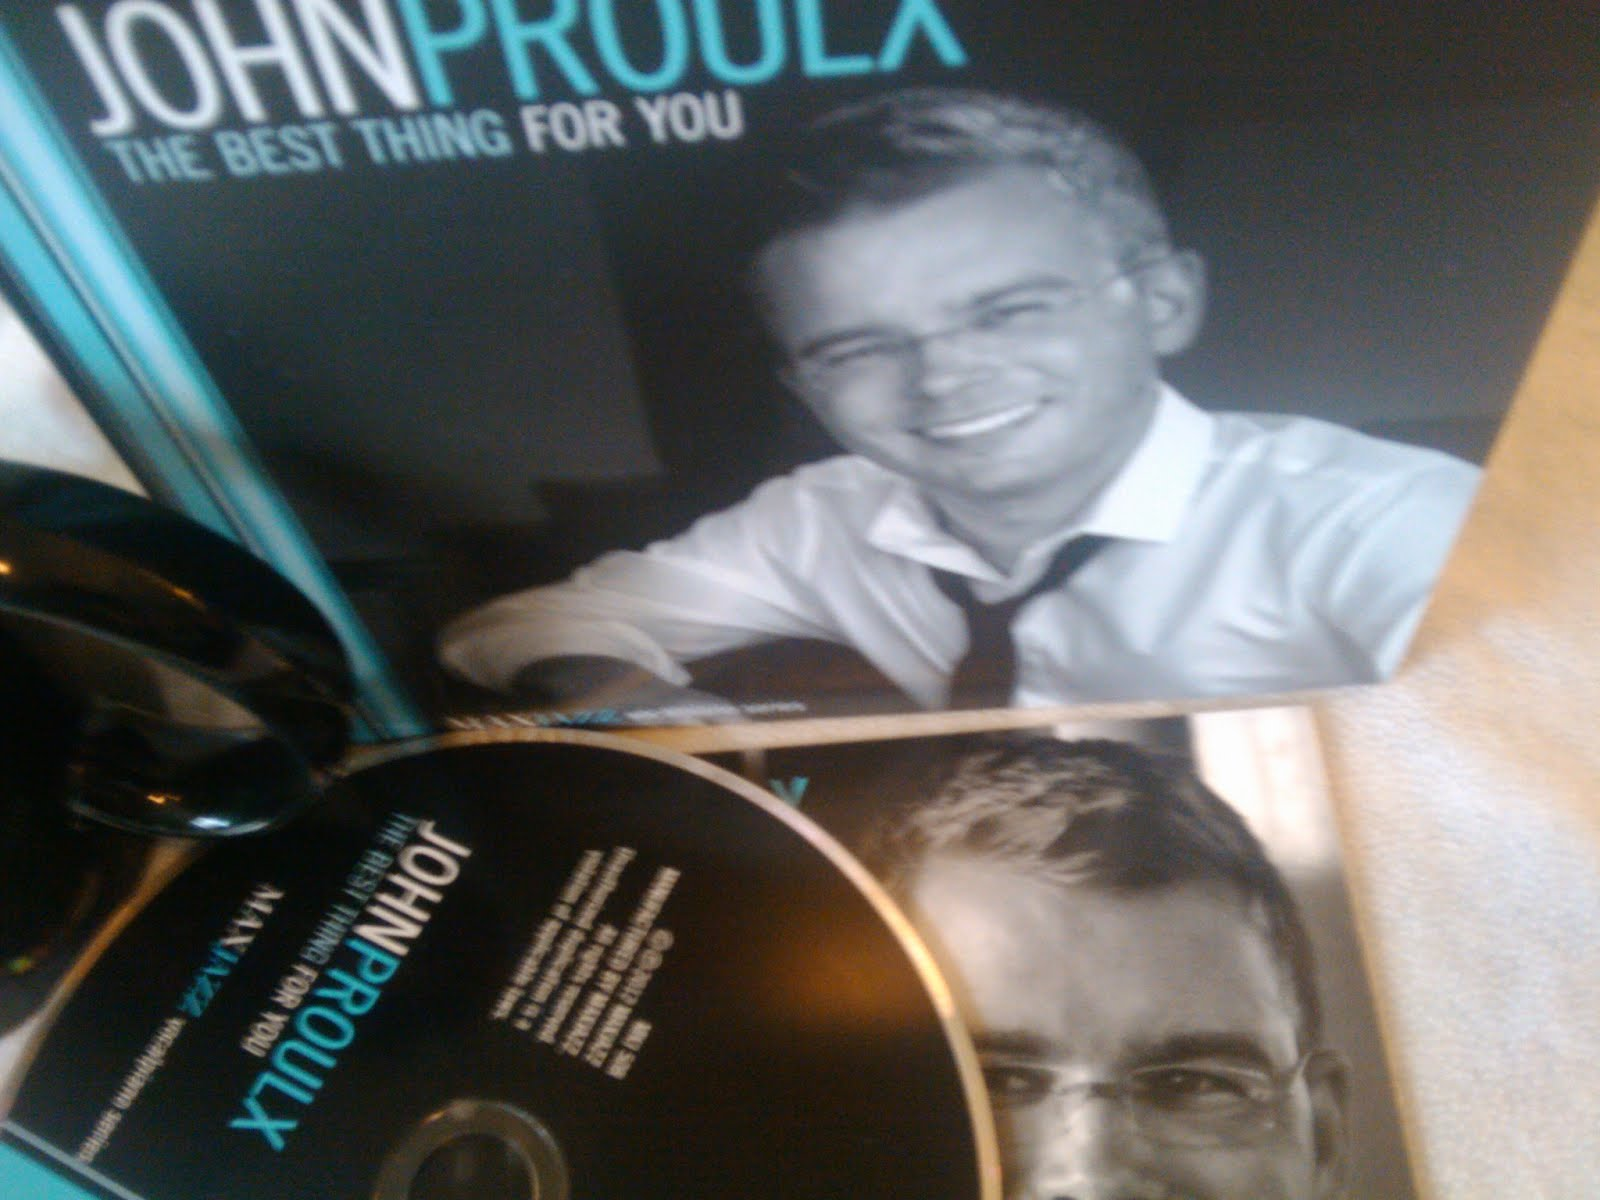 performance review of the john proulx Add your memories to the guest book of john j proulx  last review: 02/10/2015  or performance of the information, services, and materials available from this .